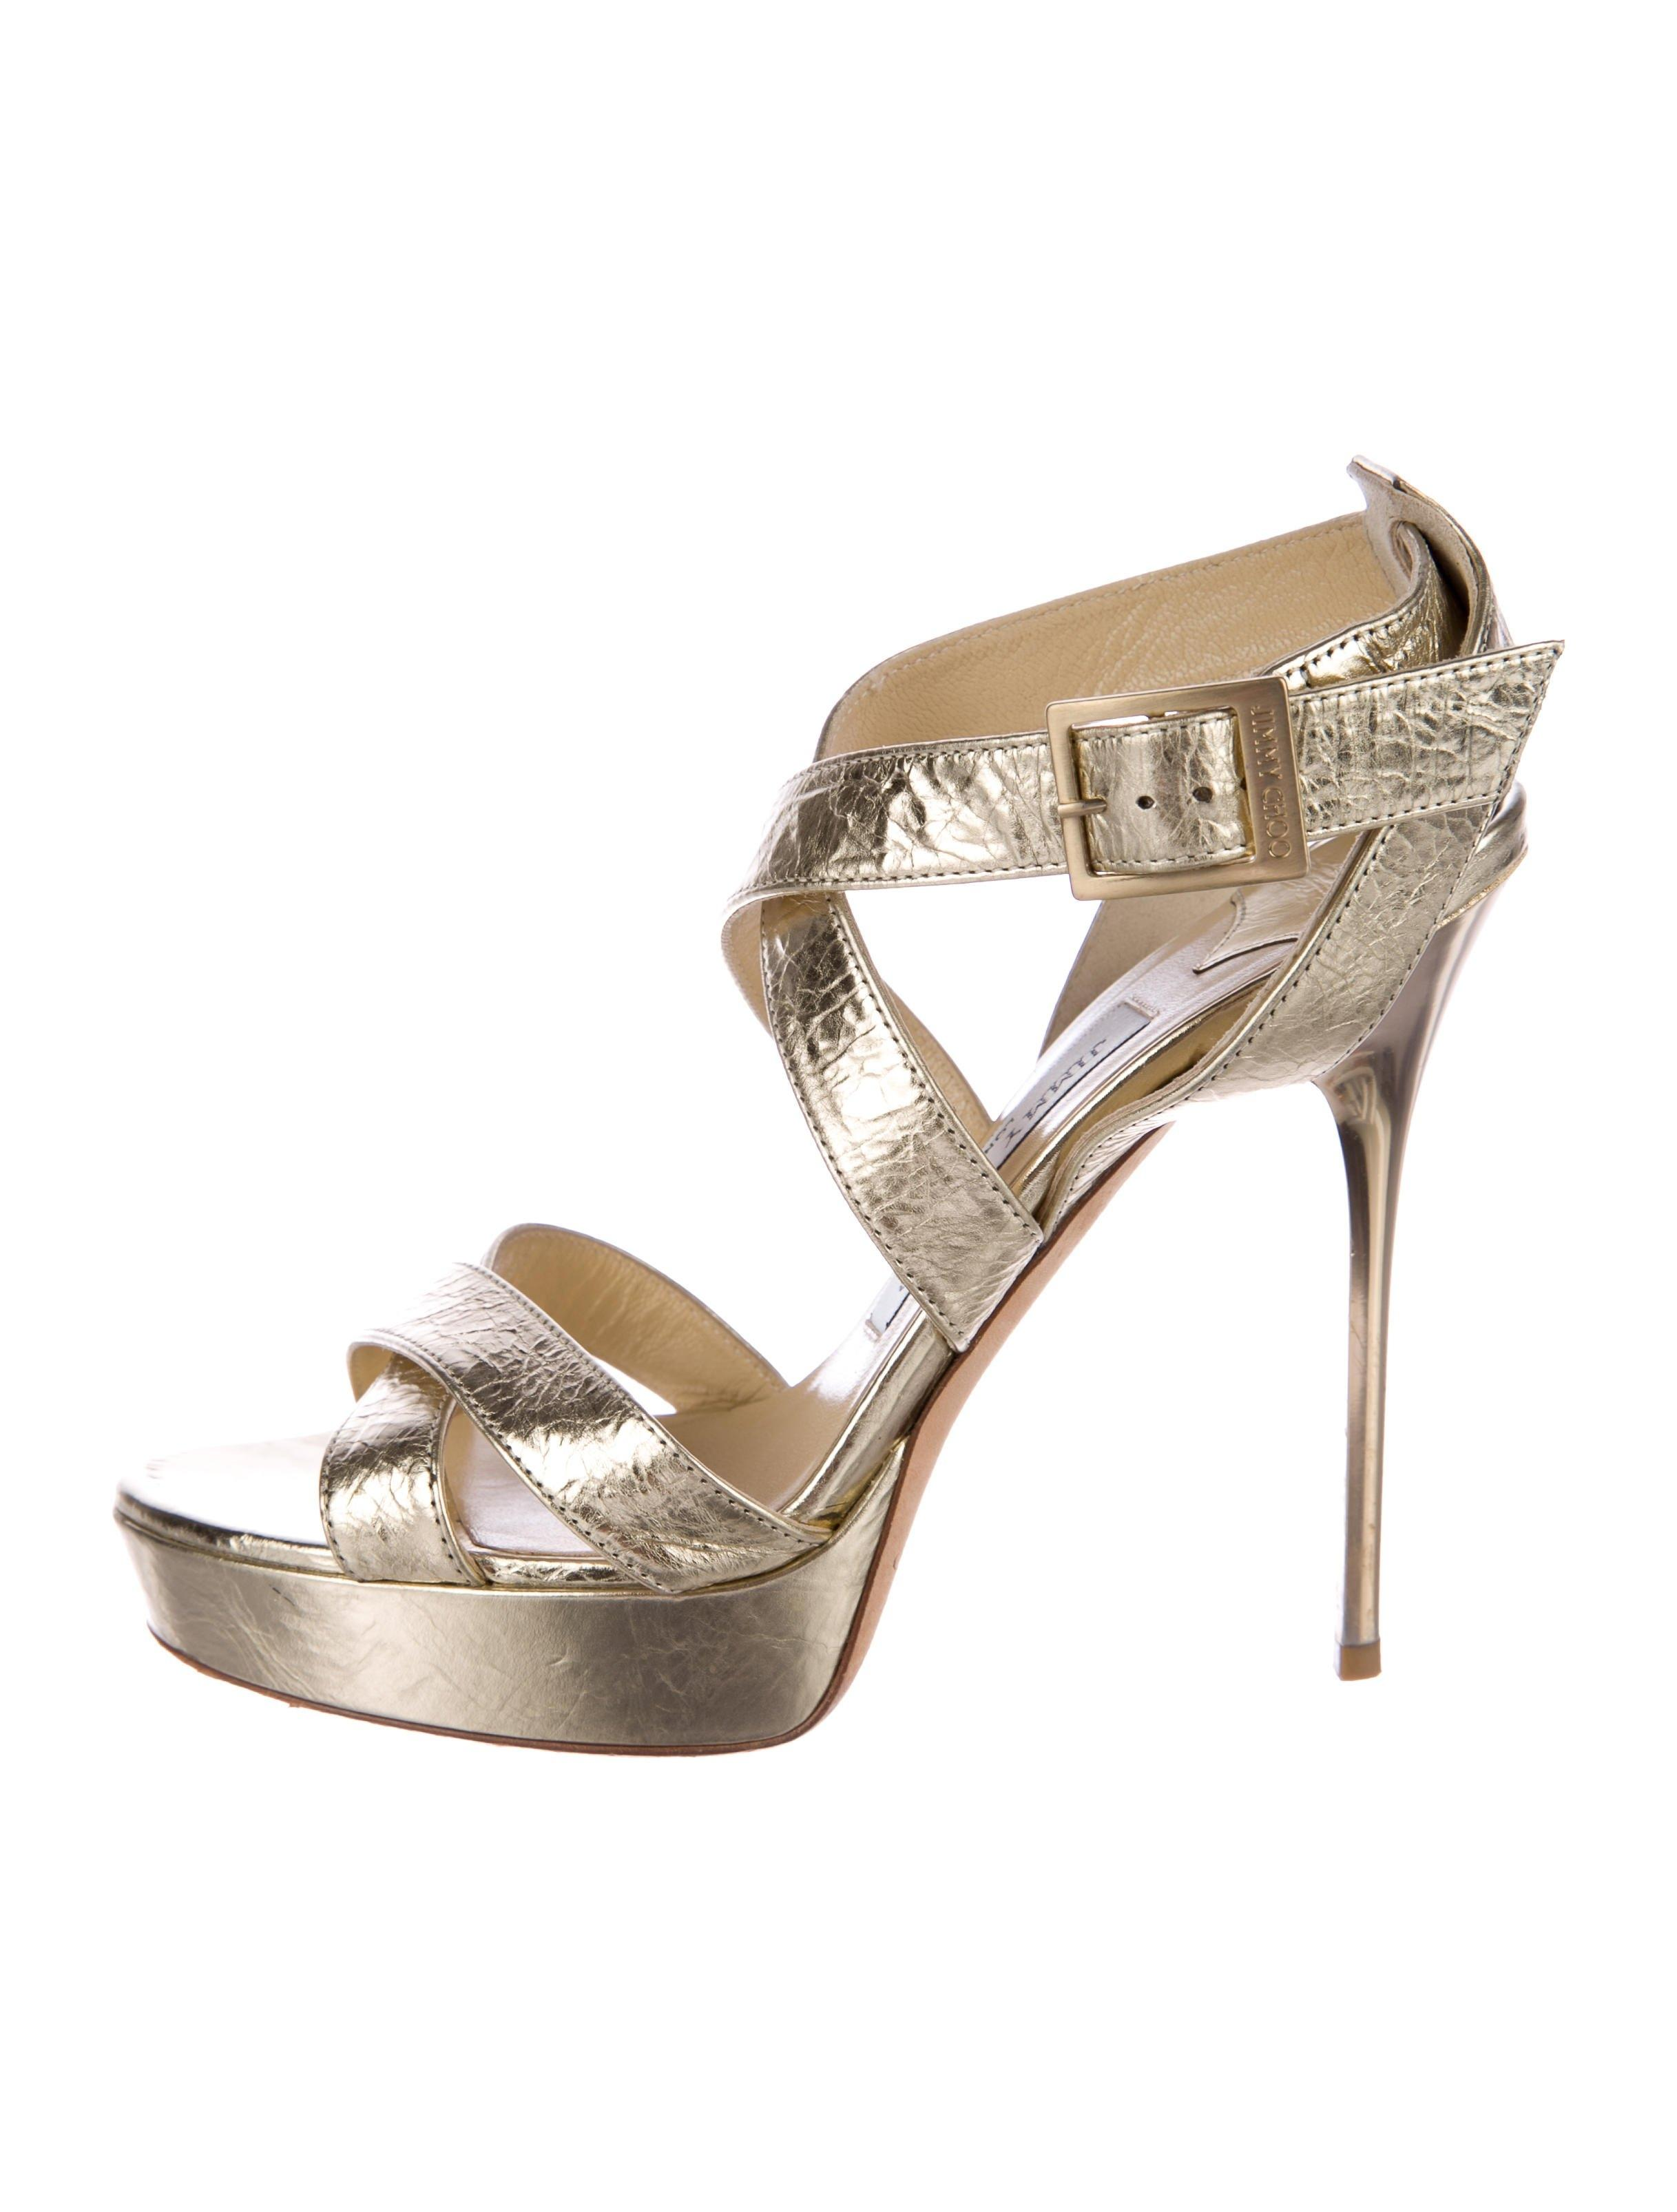 Jimmy Choo Patent Leather Multistrap Sandals free shipping 2014 unisex purchase cheap online YThPMzD